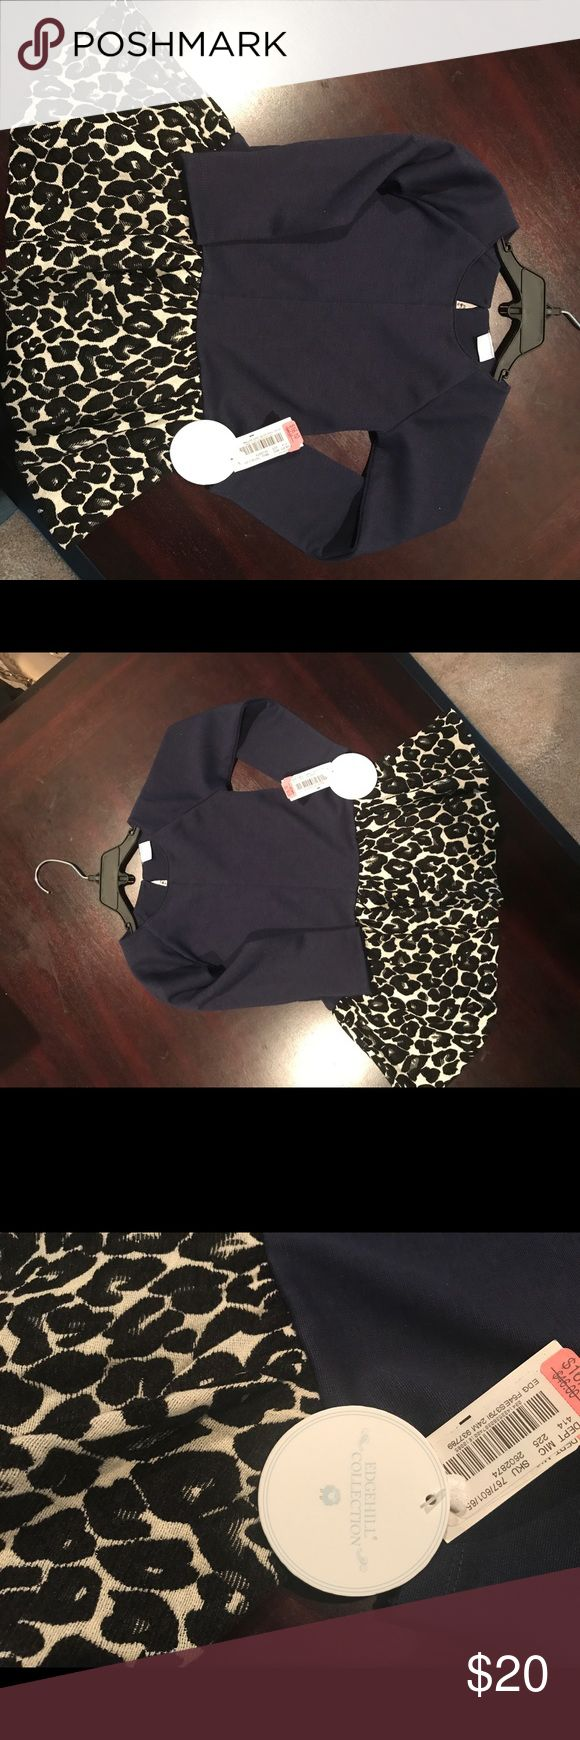 NWT Navy dress w  black & cream leopard print The top of the dress is solid navy blue & the bottom of the dress is black & white leopard print. Super cute for any dressy occasion. Edgehill Collection Dresses Formal